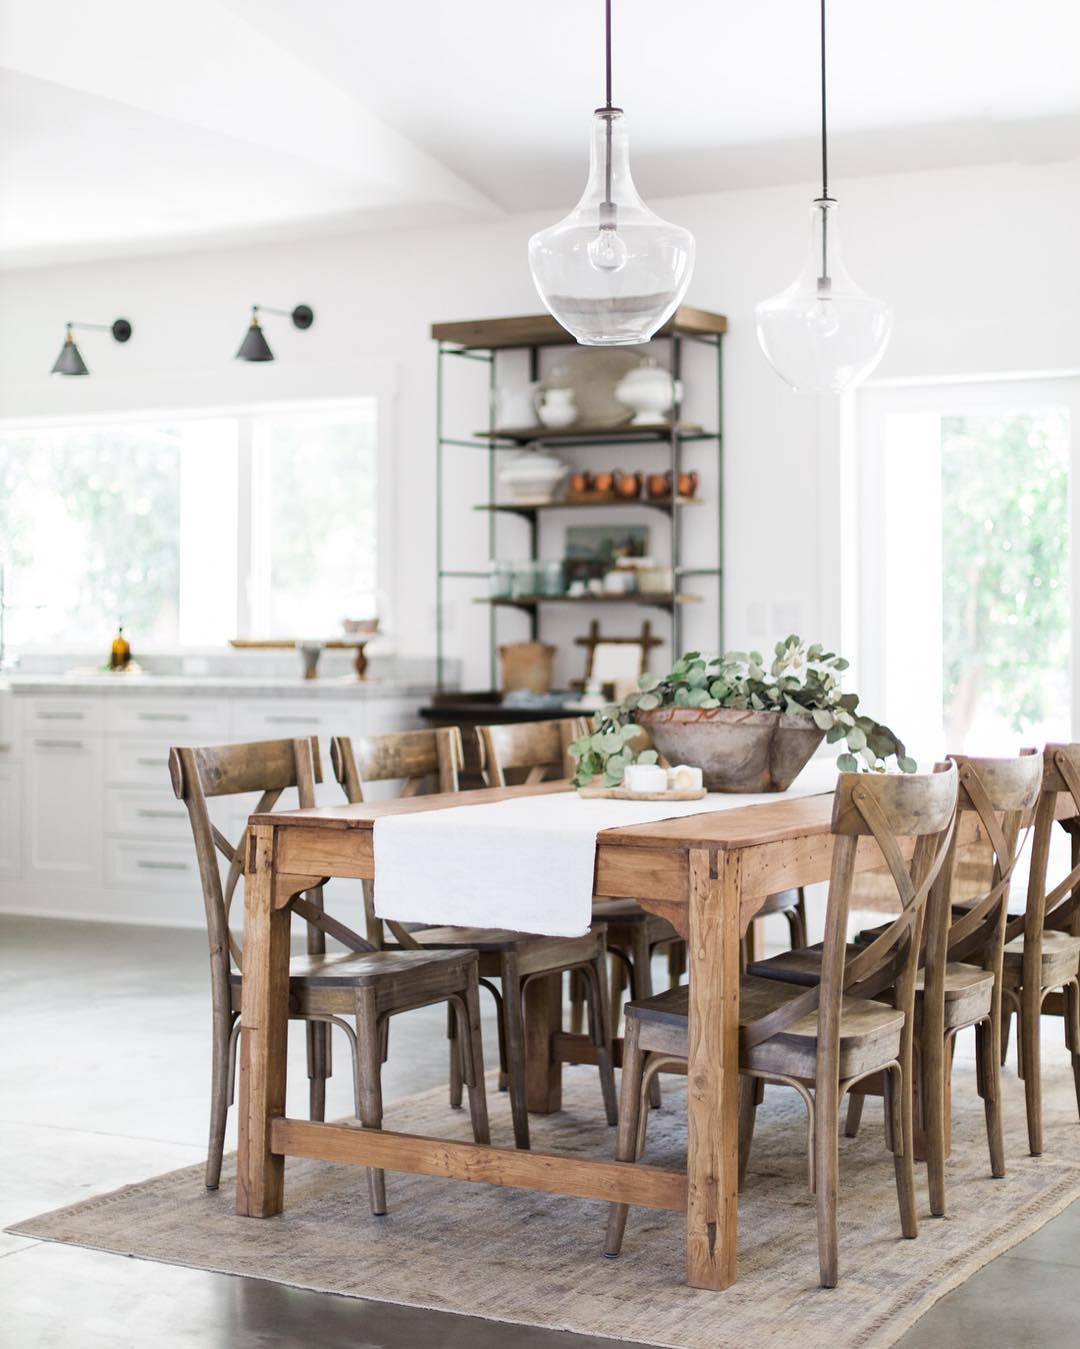 12 Rustic Dining Room Ideas: This Pin Was Discovered By Angela Marie Made